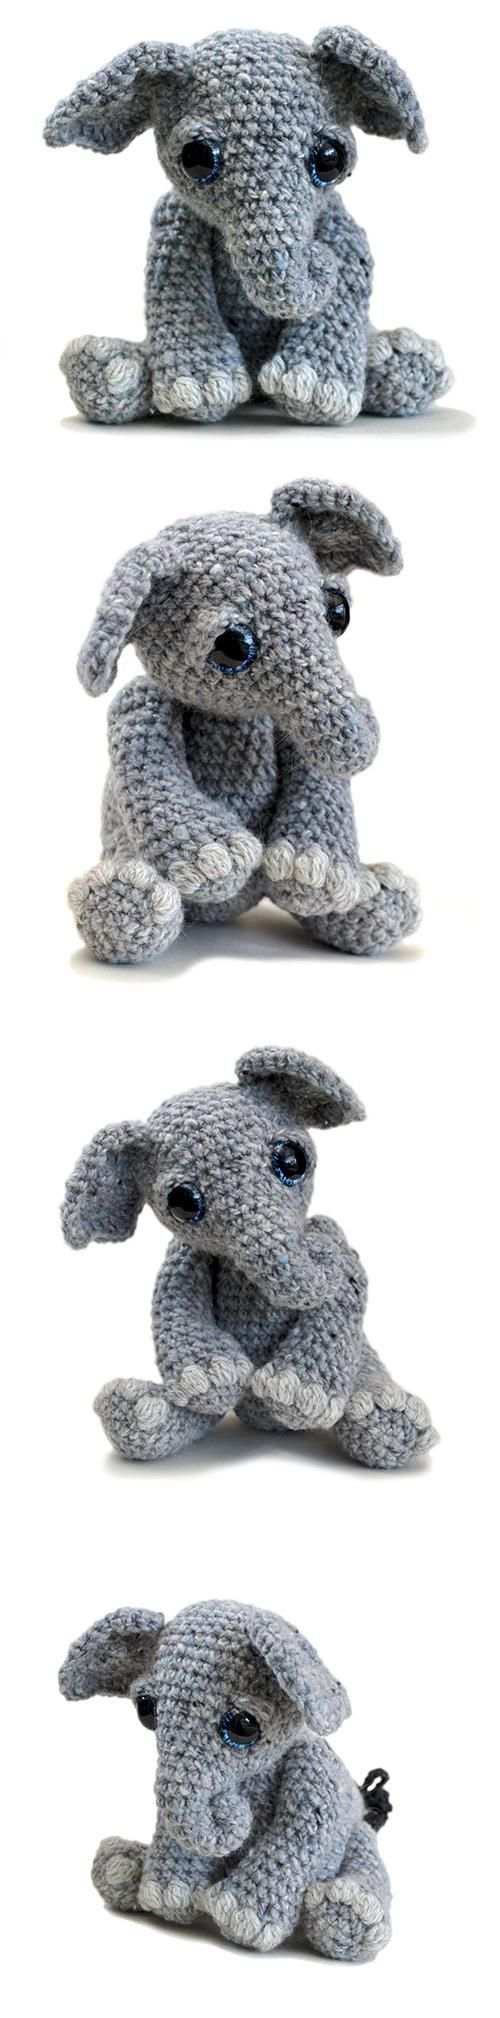 Tilly the Elephant amigurumi pattern by Patchwork Moose (Kate E ...